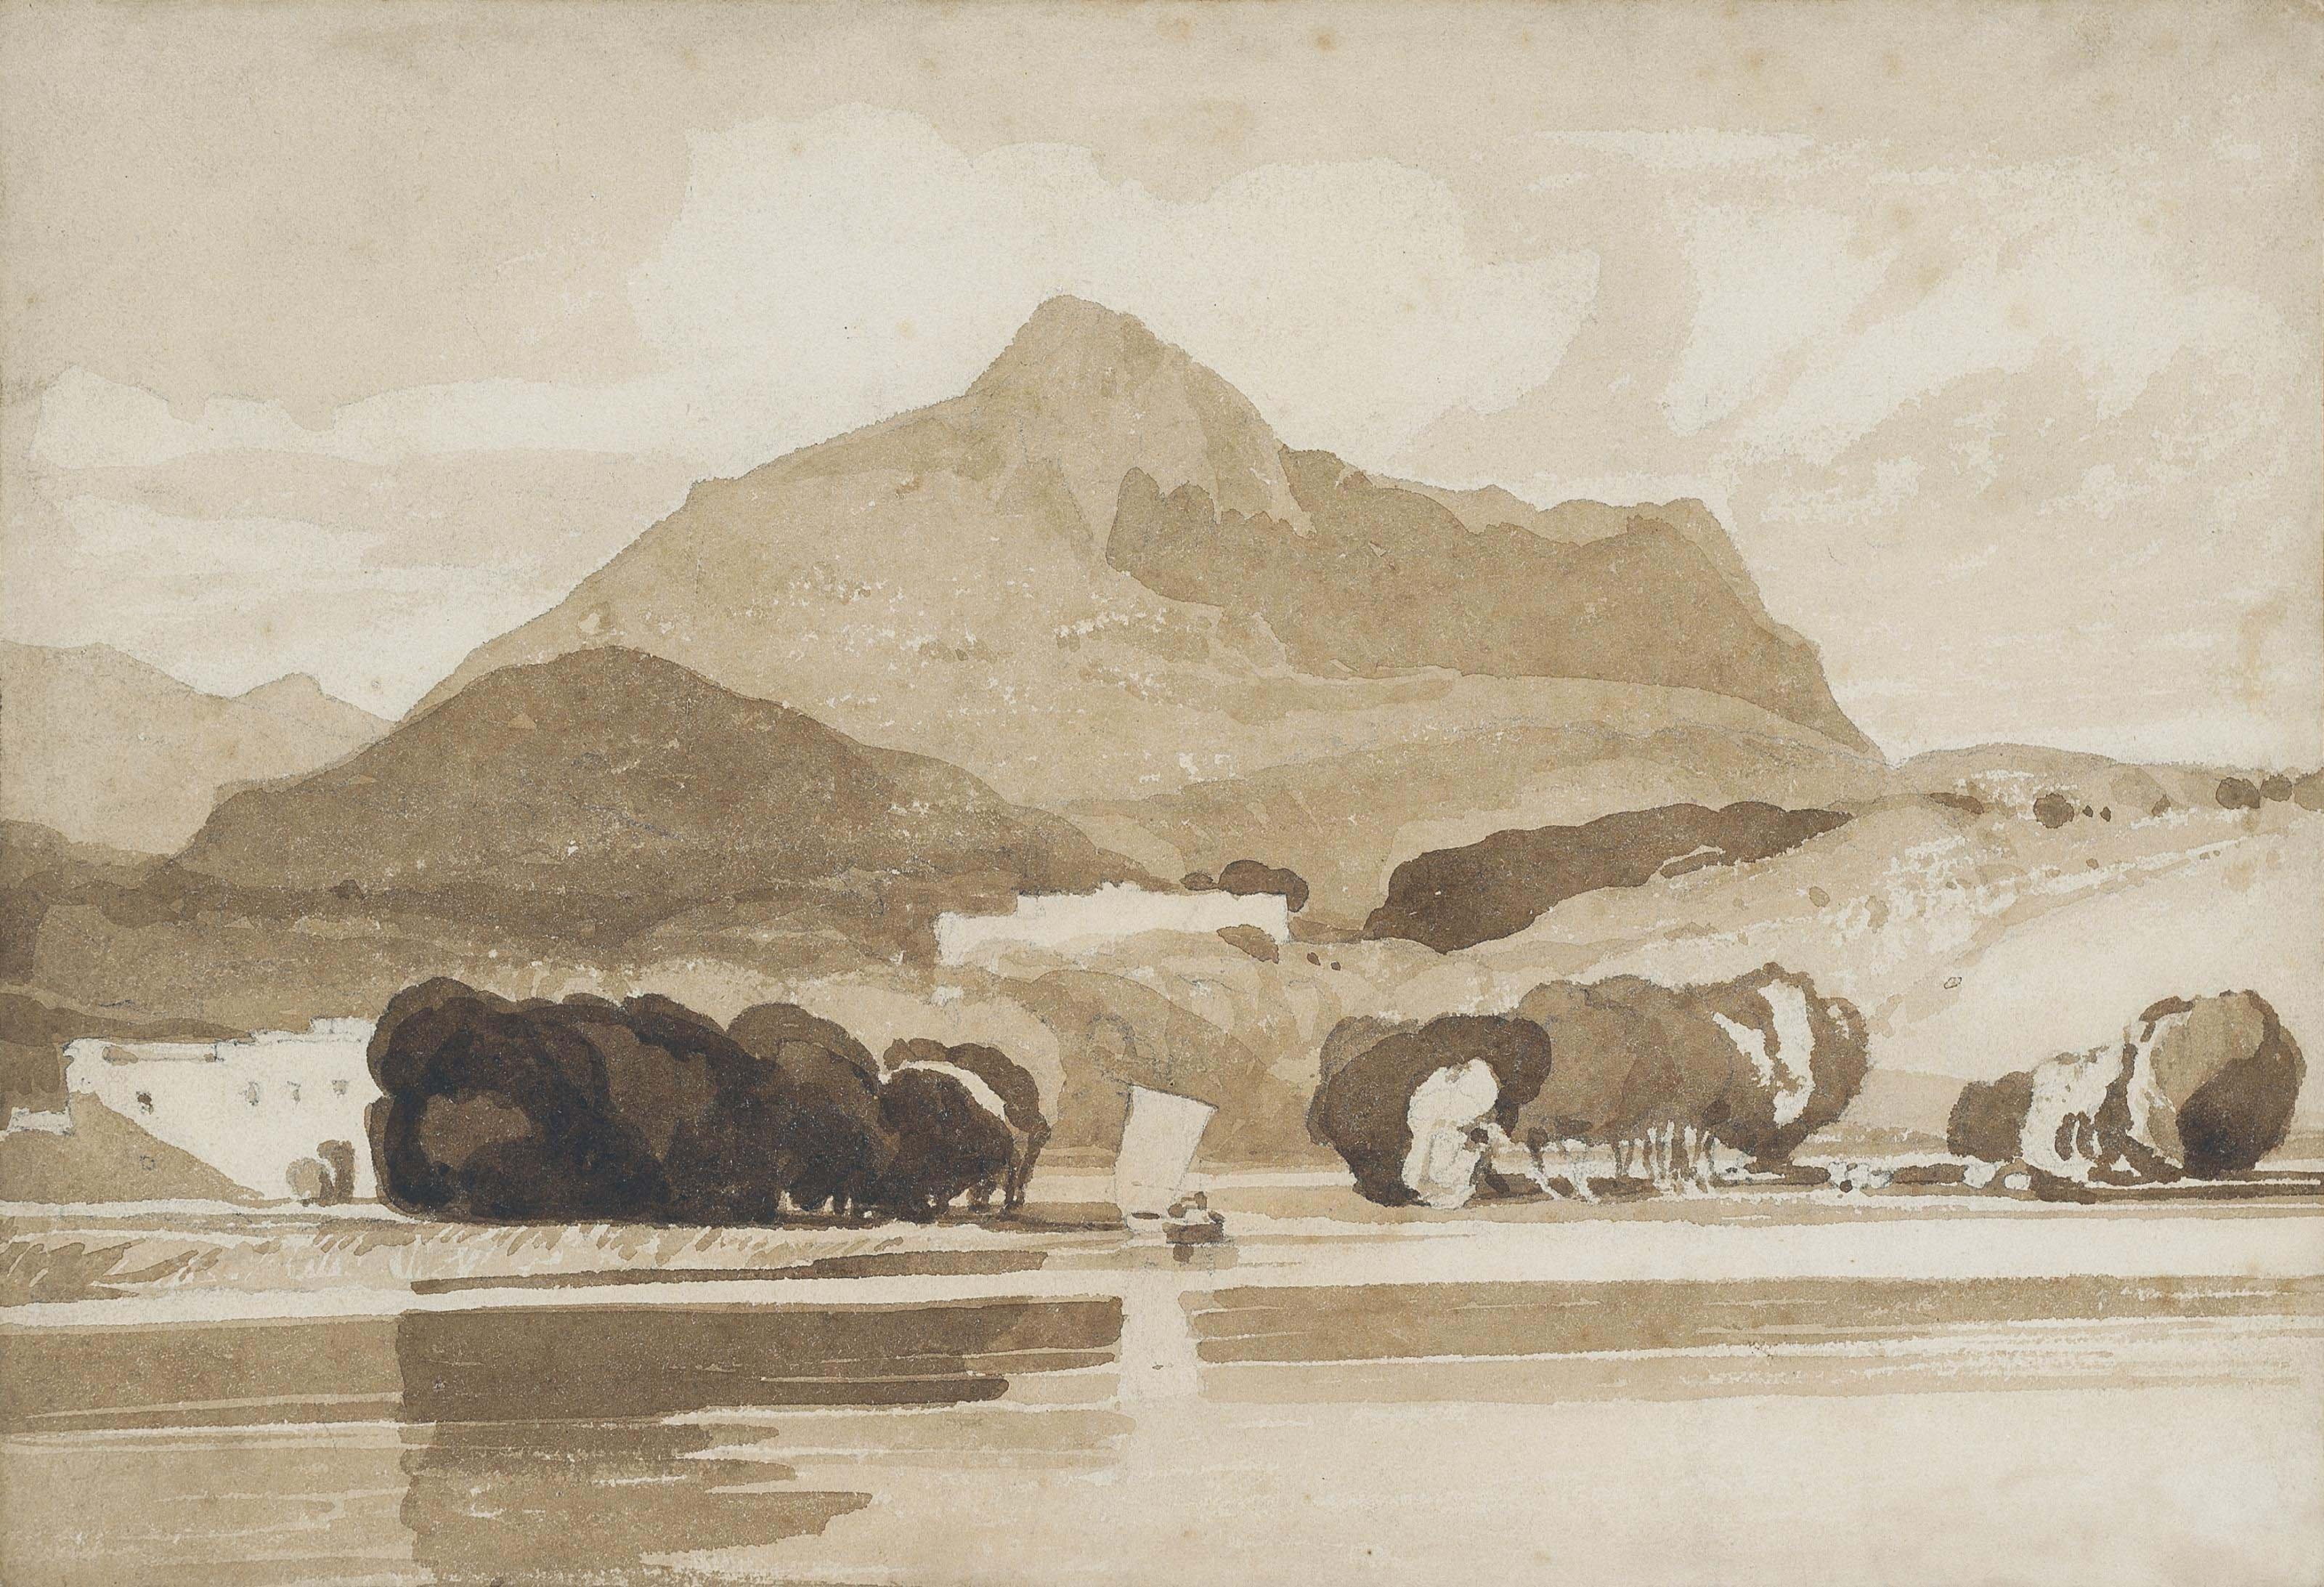 A boat on a lake in a mountainous landscape